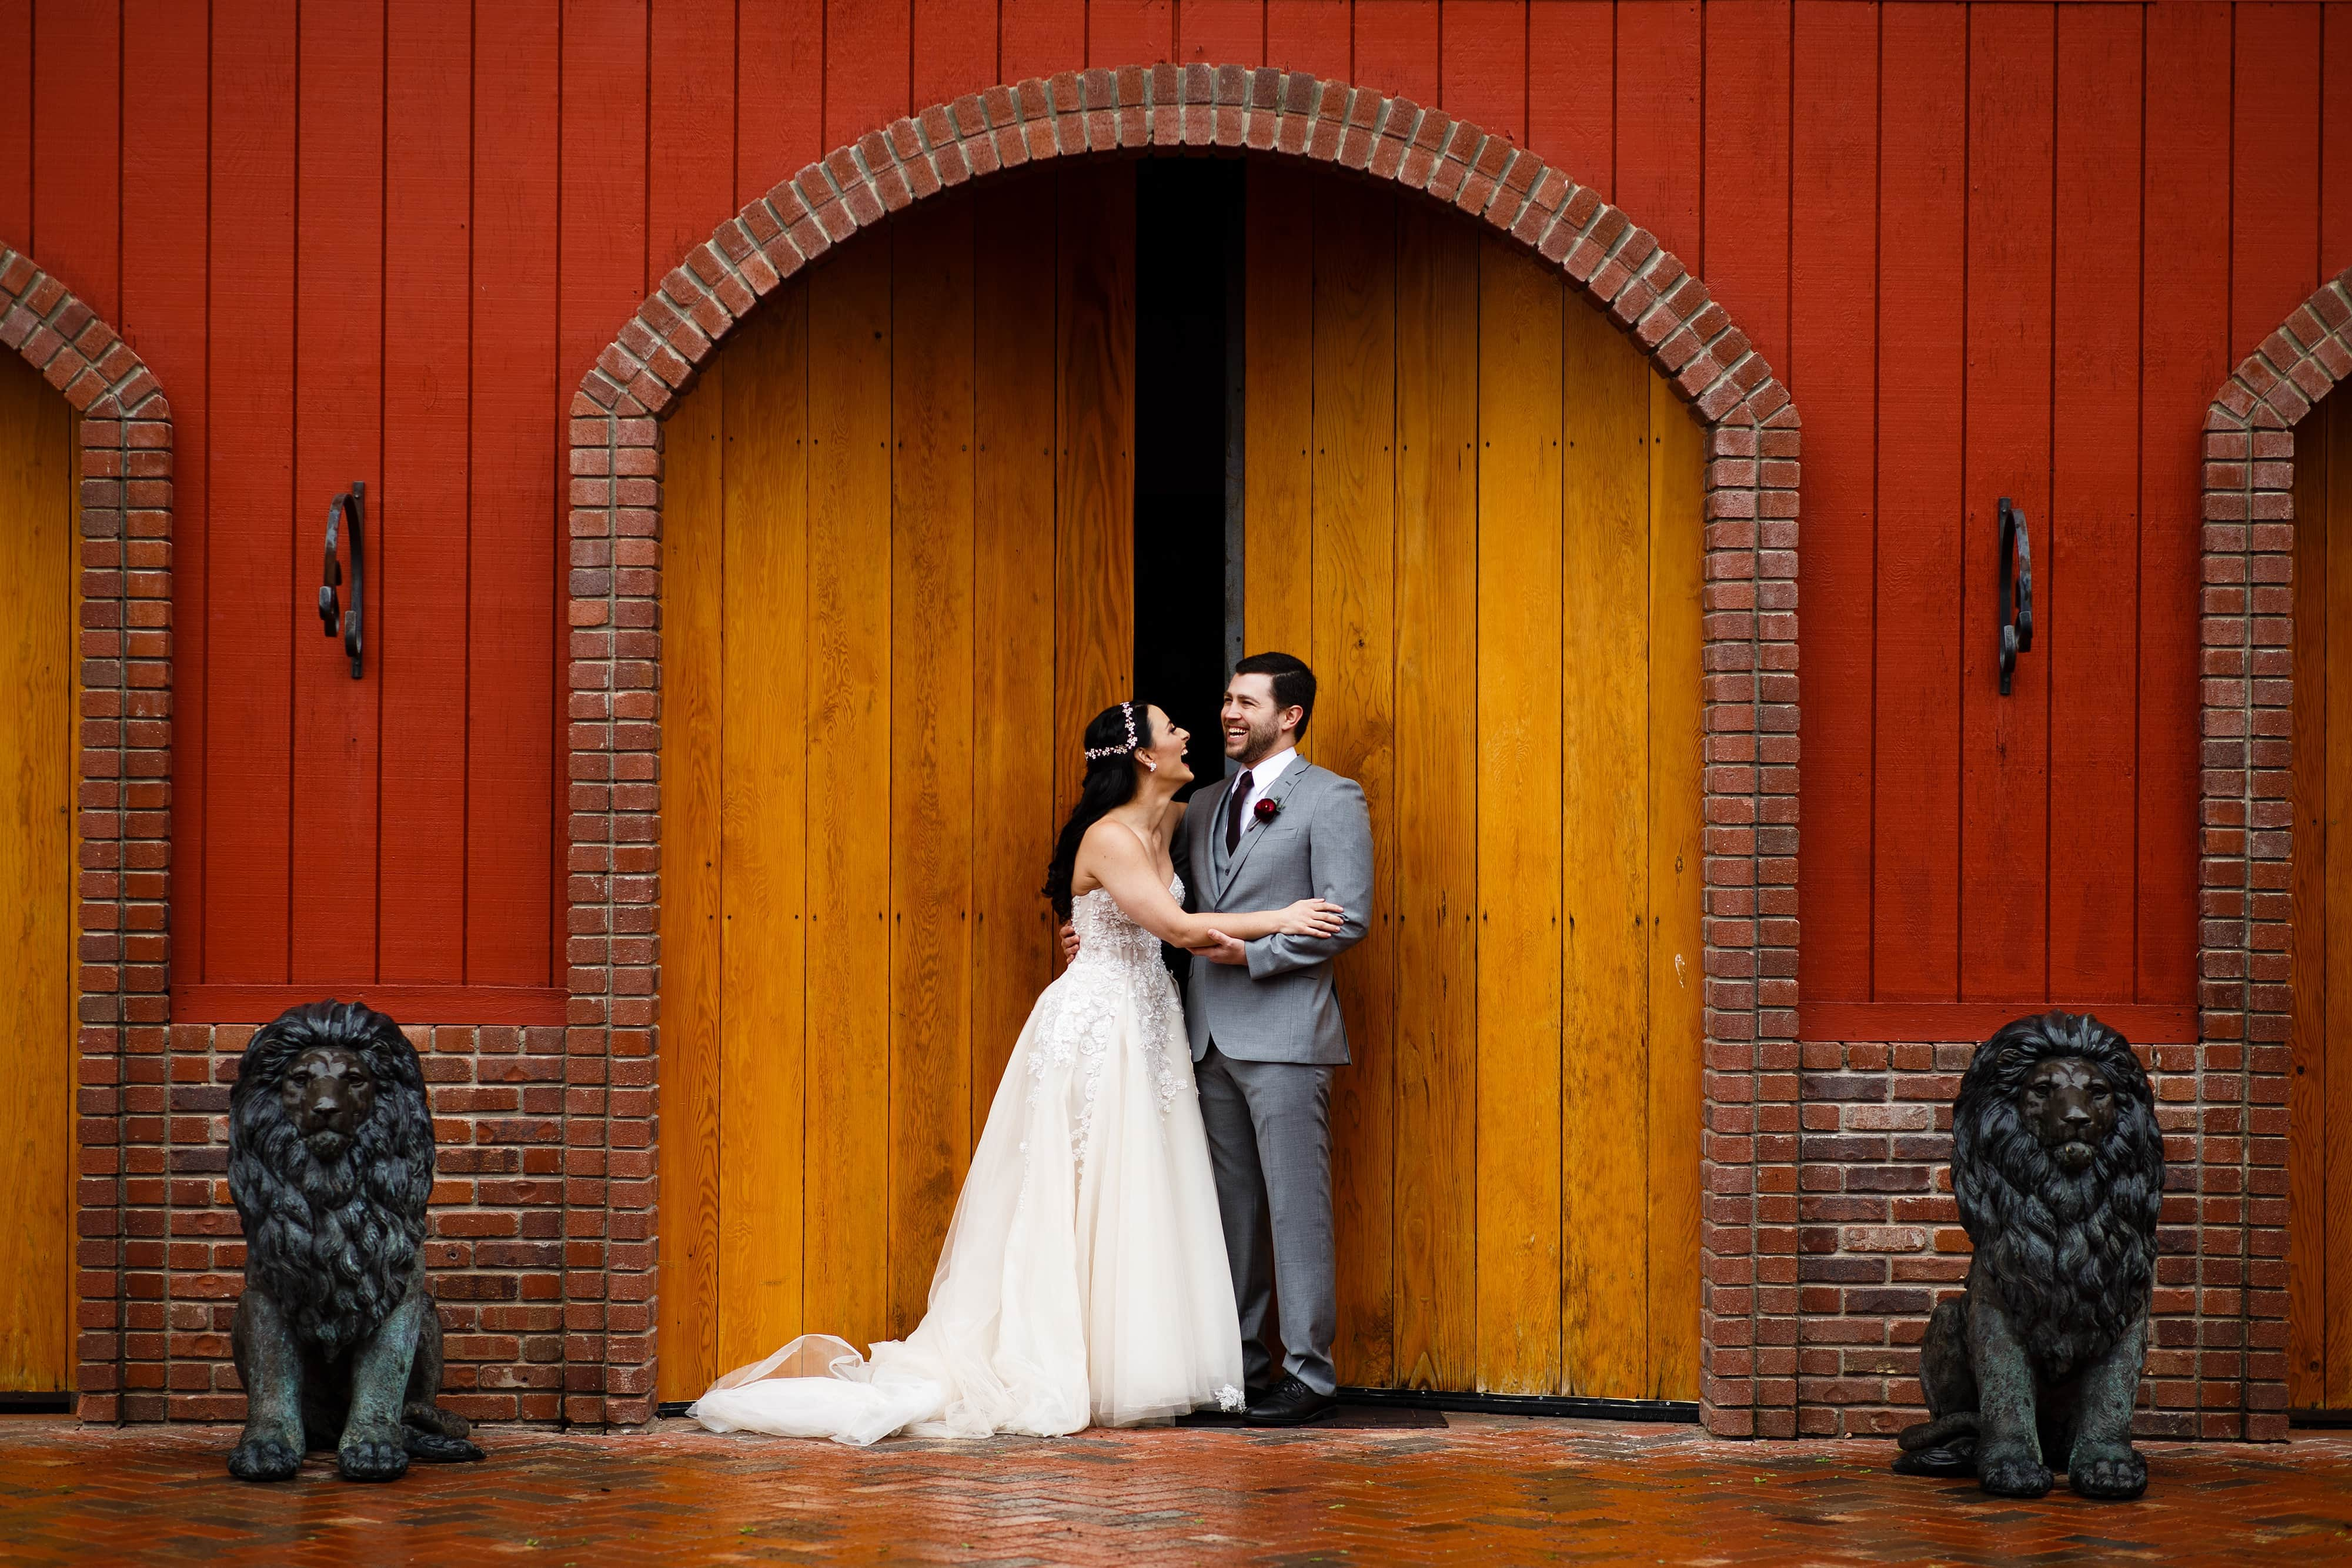 The couple shares a laugh together while posing for portraits during their Crooked Willow Farms wedding